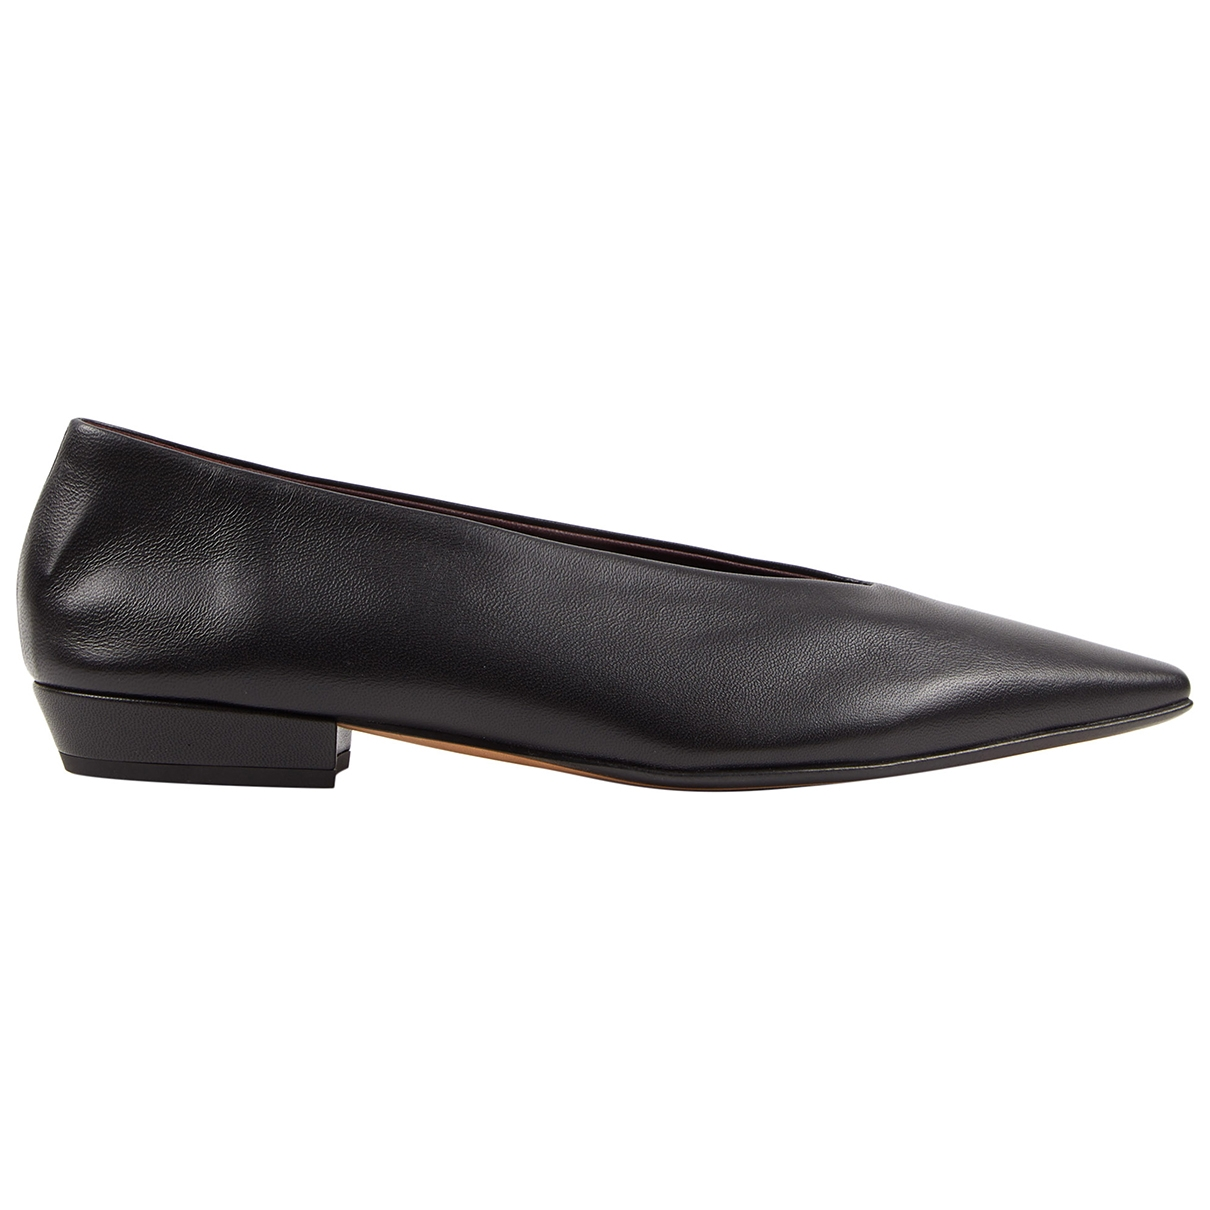 Bottega Veneta \N Black Leather Ballet flats for Women 38 EU